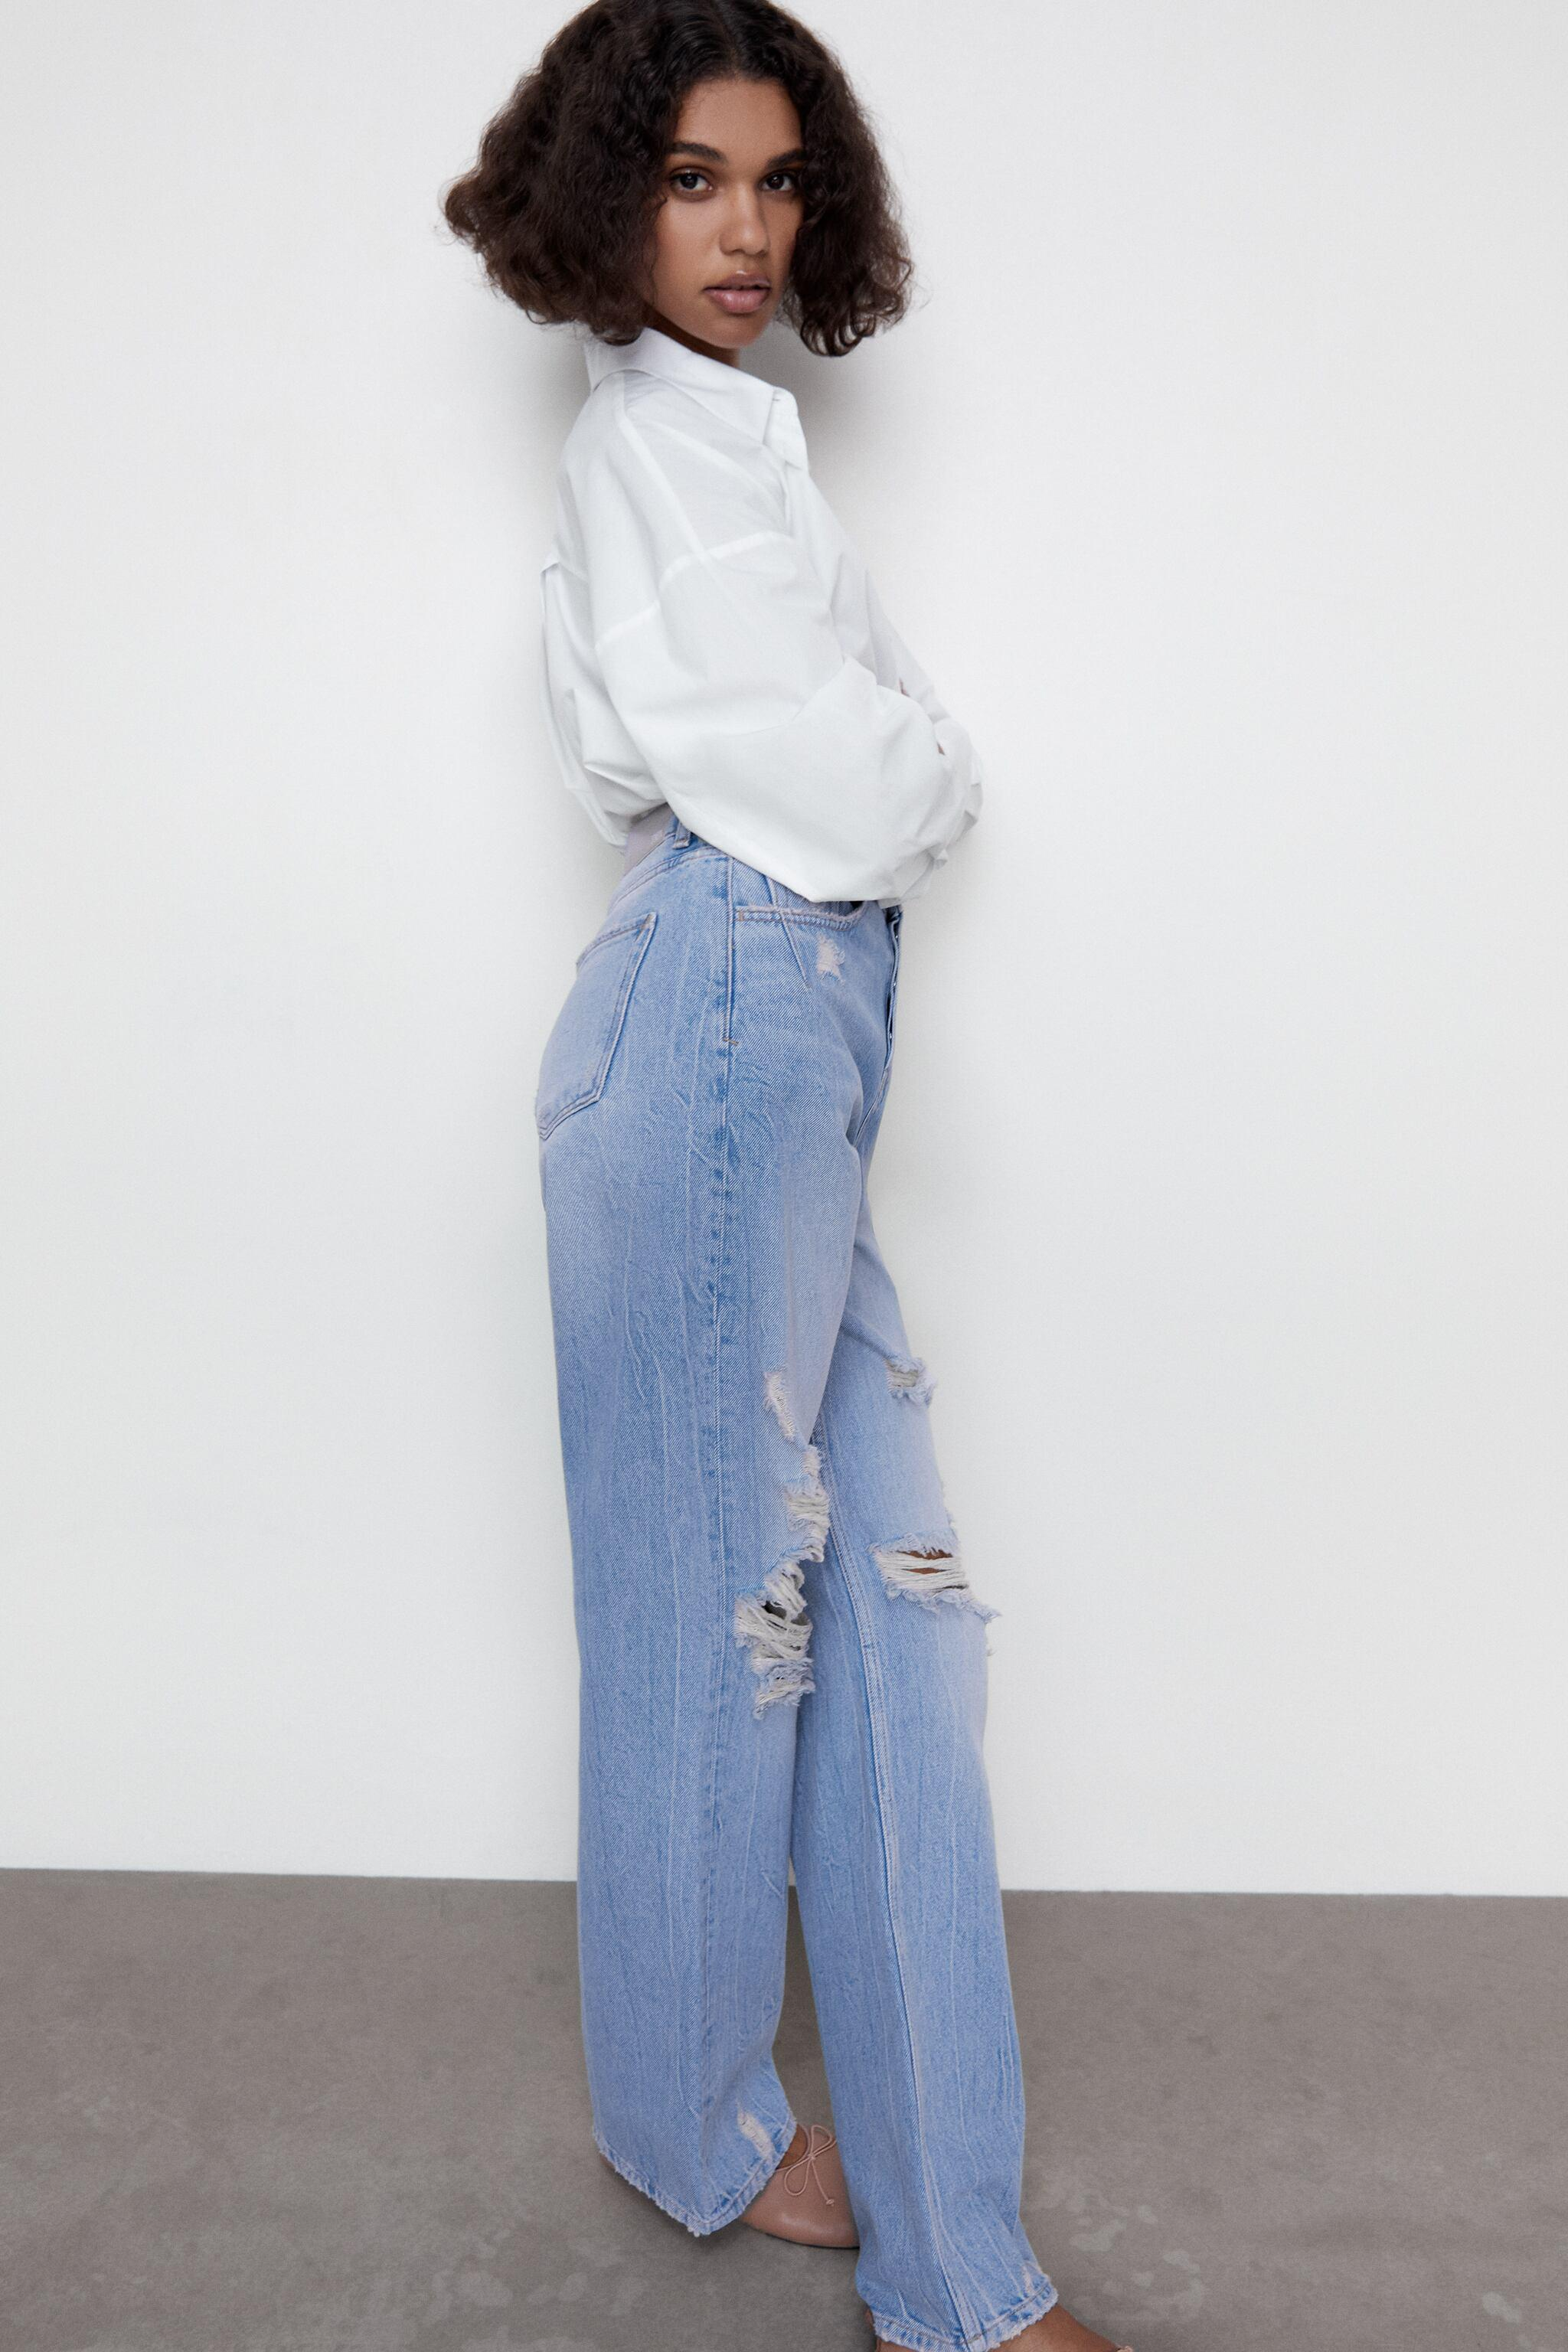 Z1975 HI-RISE STRAIGHT LEG JEANS WITH RIPS 3